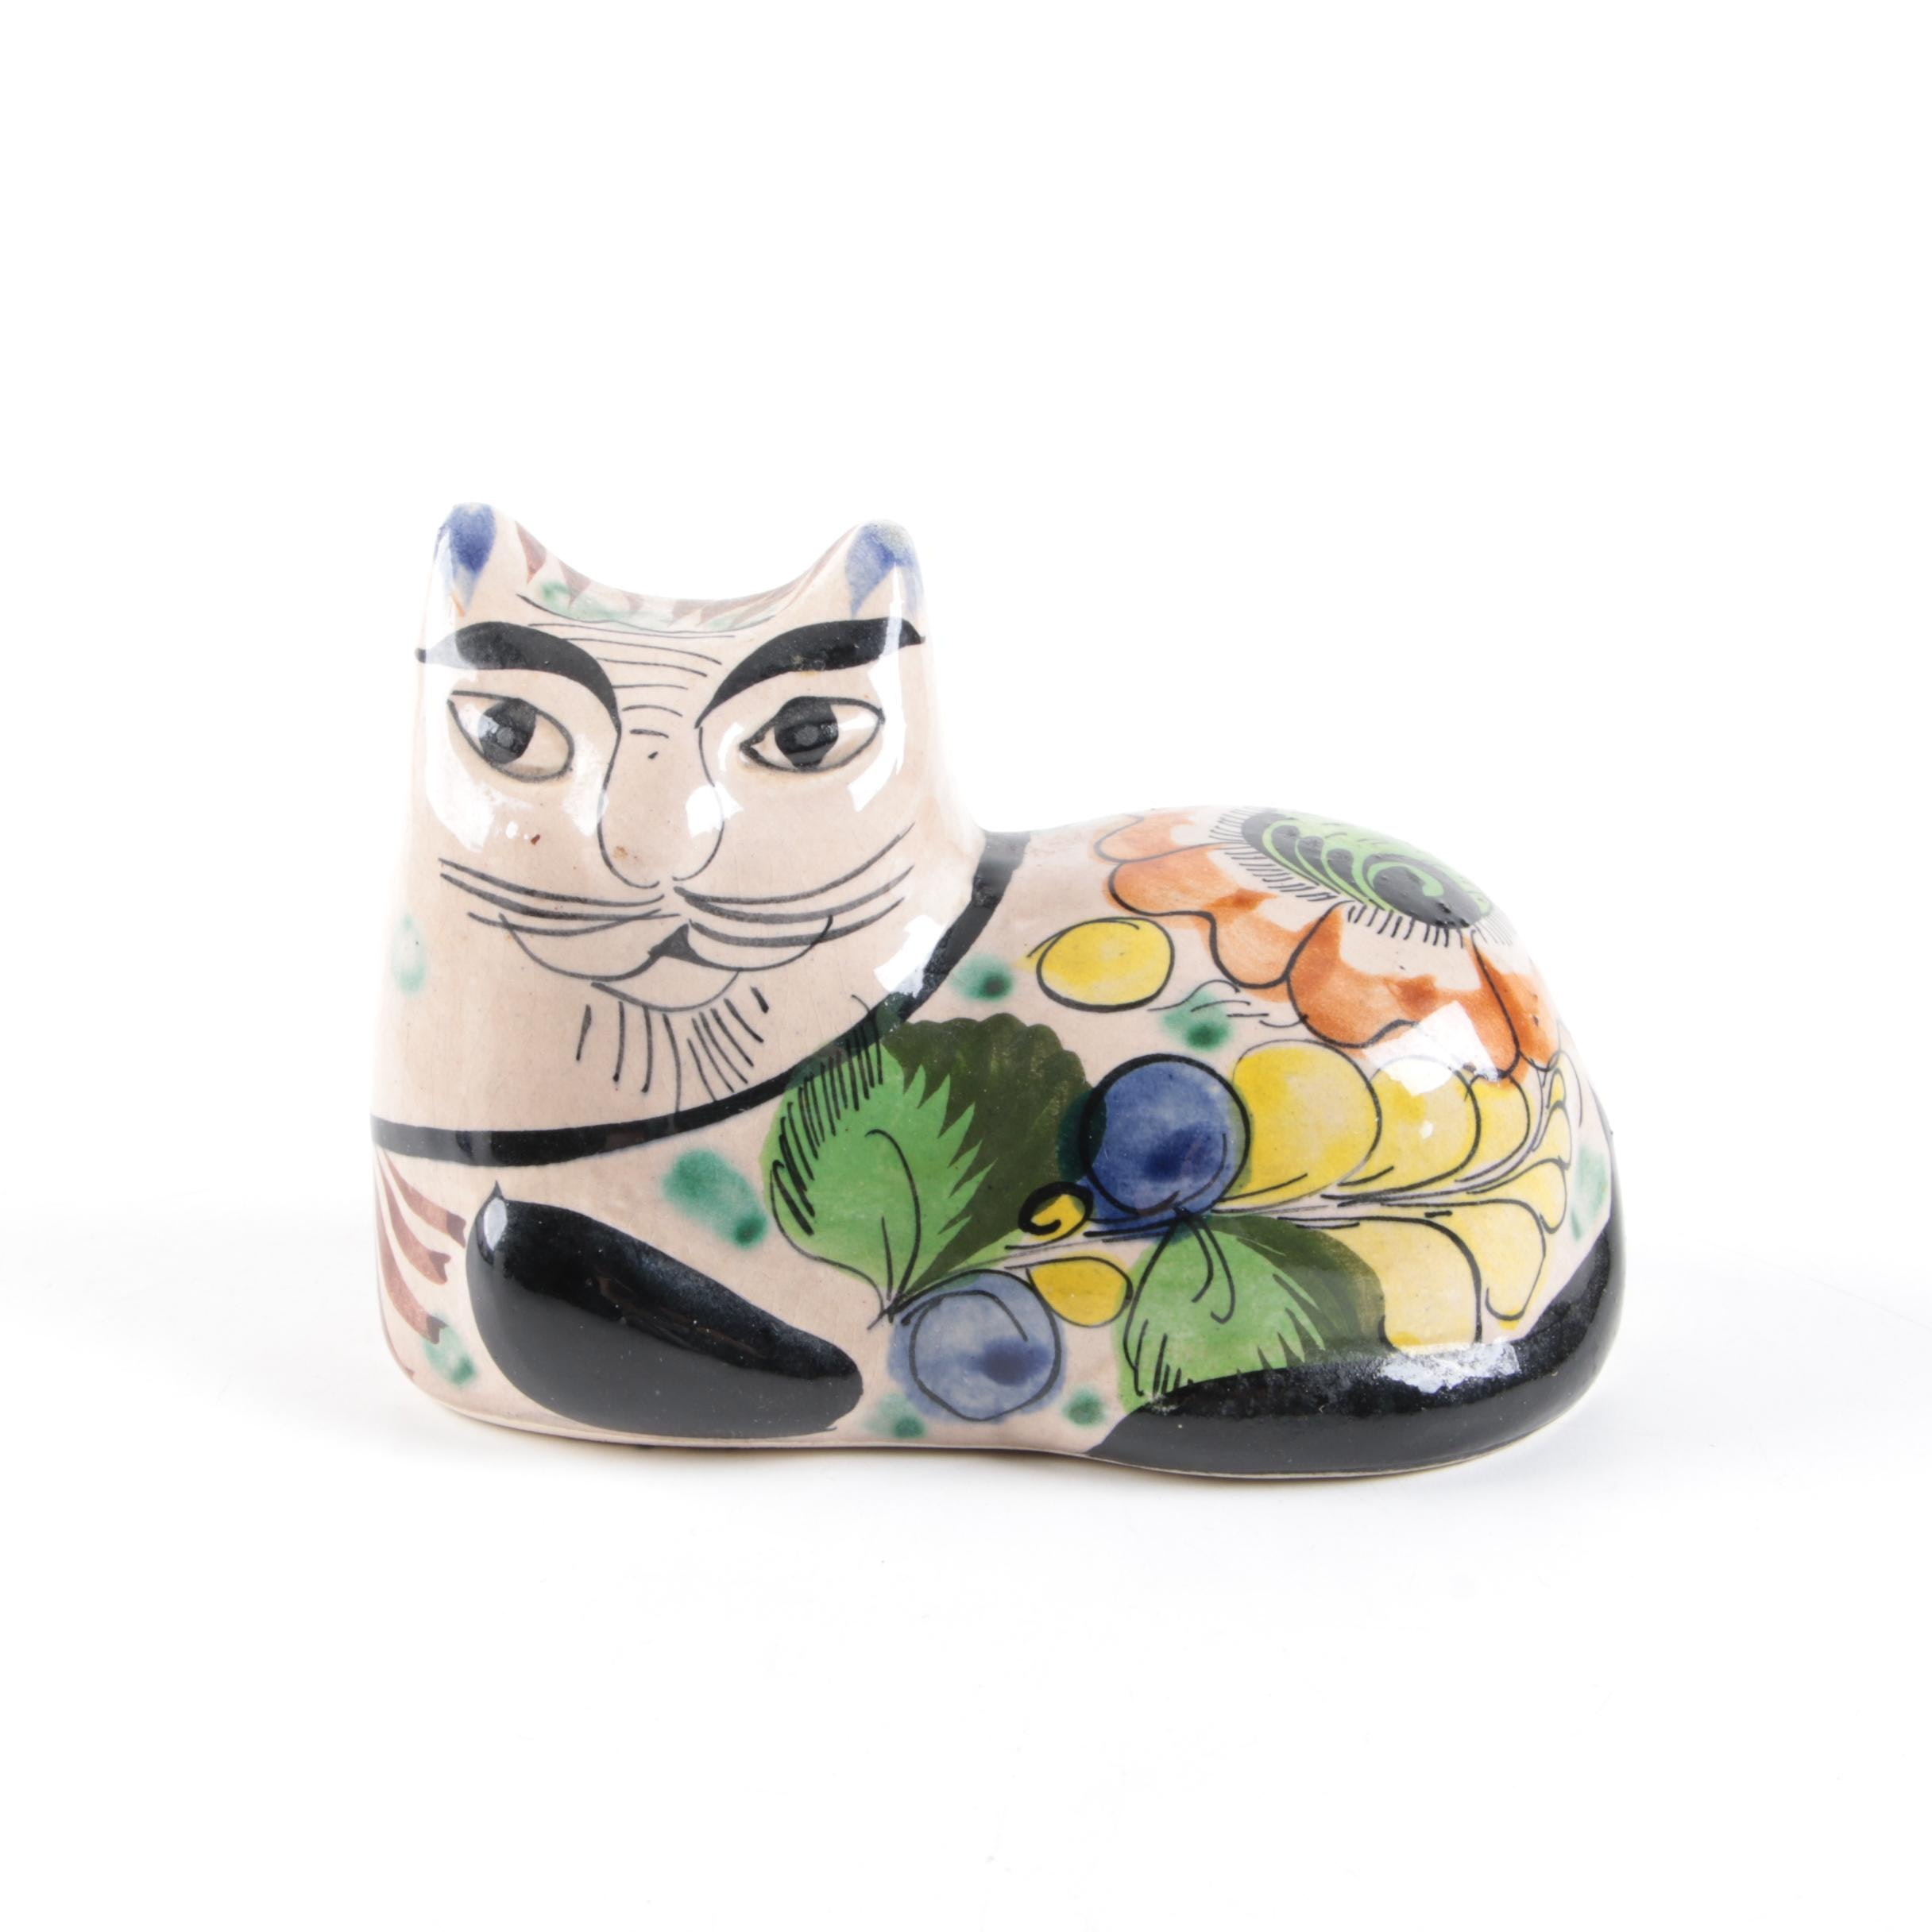 Mexican Hand Painted Ceramic Cat Figurine